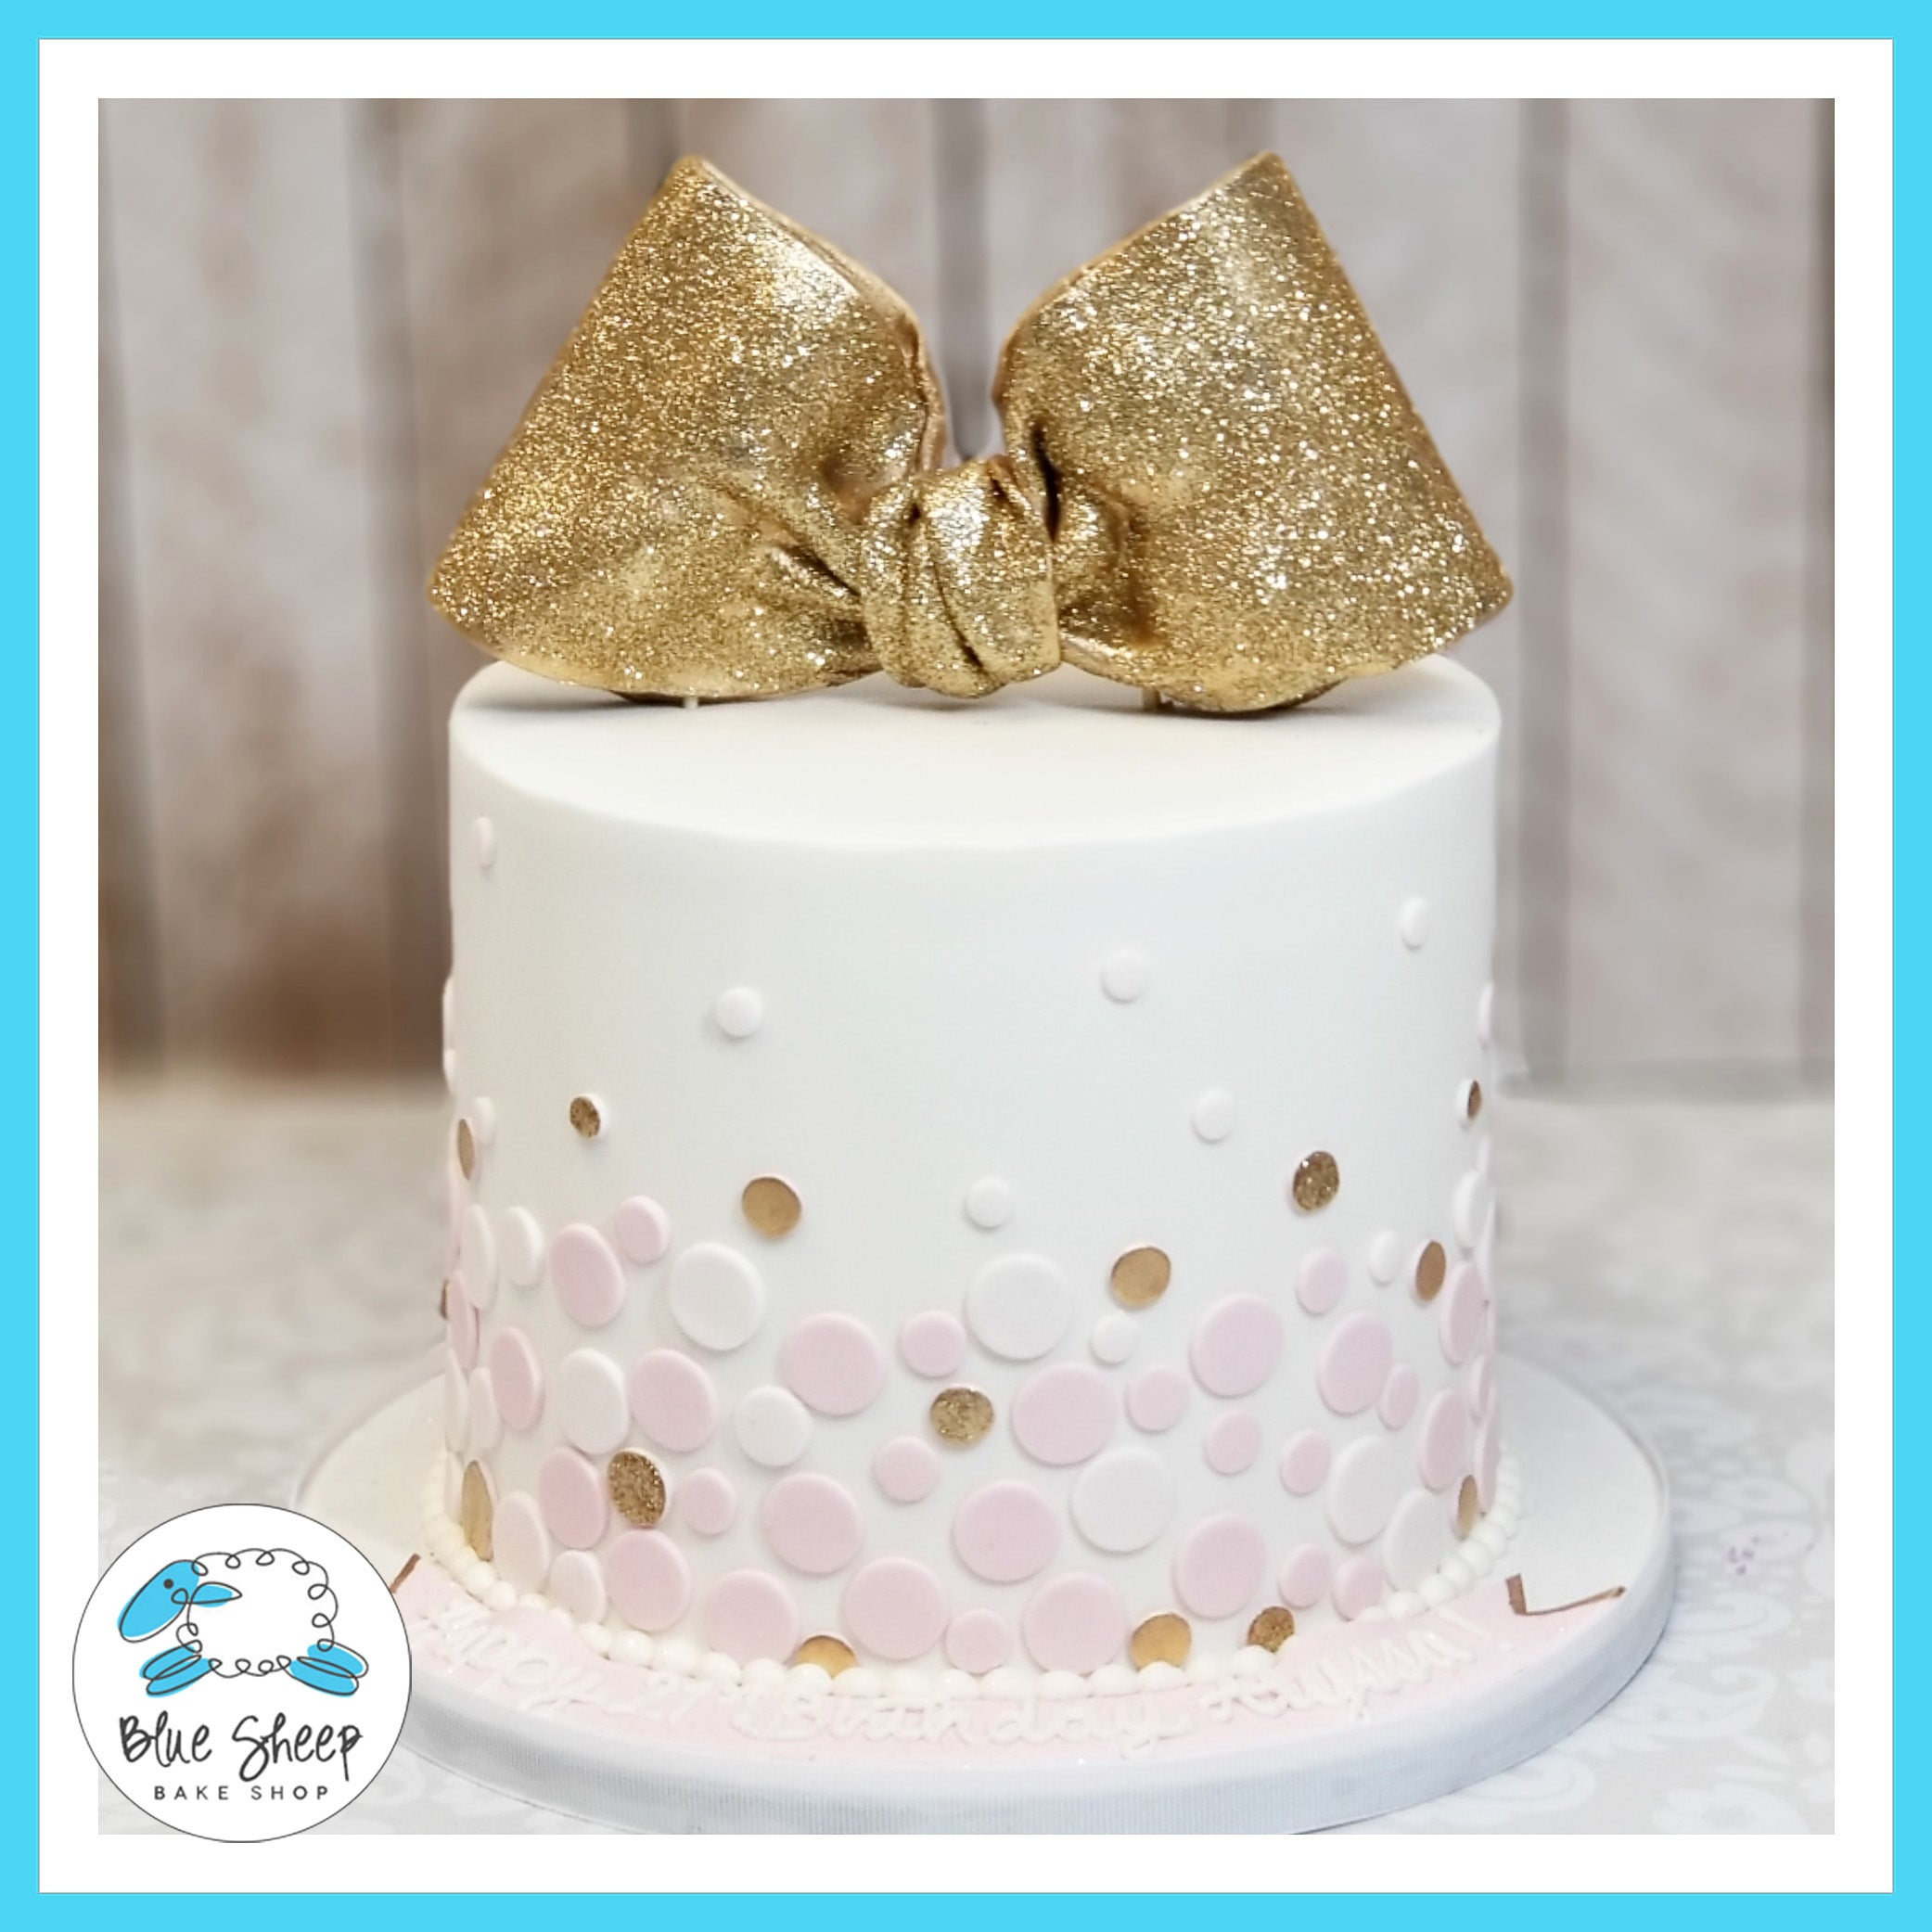 Astonishing Pink And Gold Polka Dot Birthday Cake Blue Sheep Bake Shop Funny Birthday Cards Online Fluifree Goldxyz